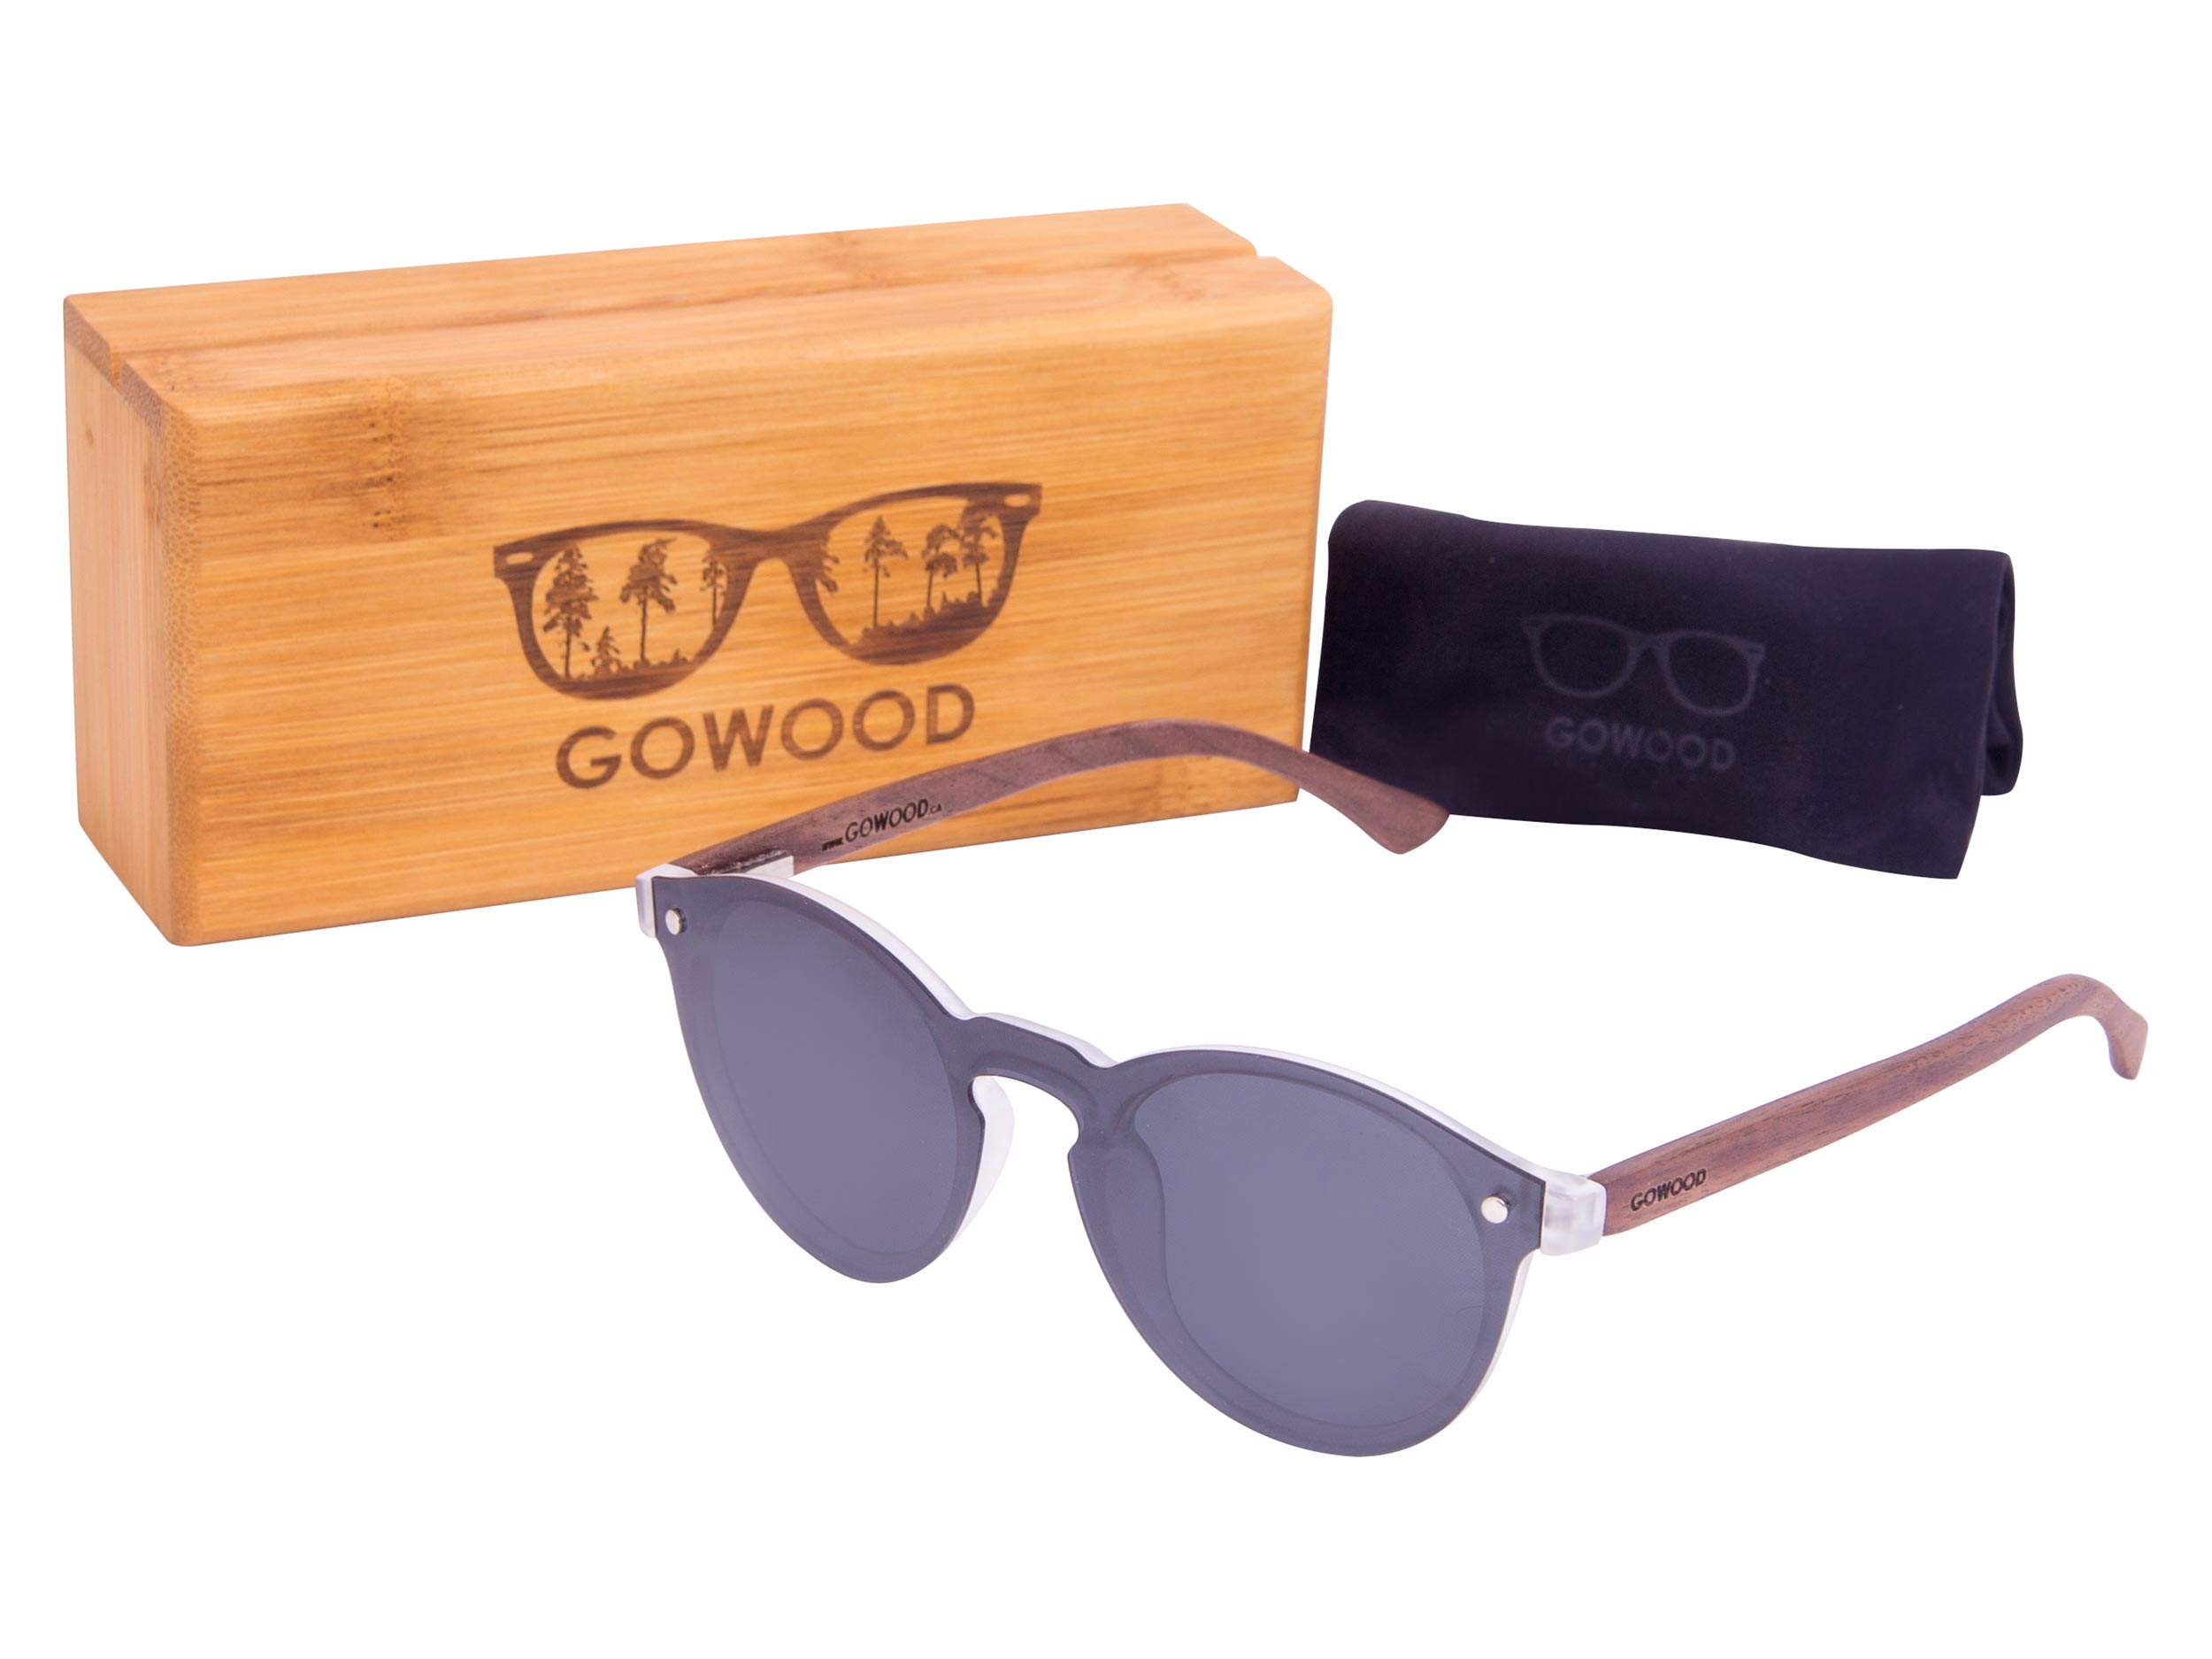 Round walnut wood sunglasses set 2